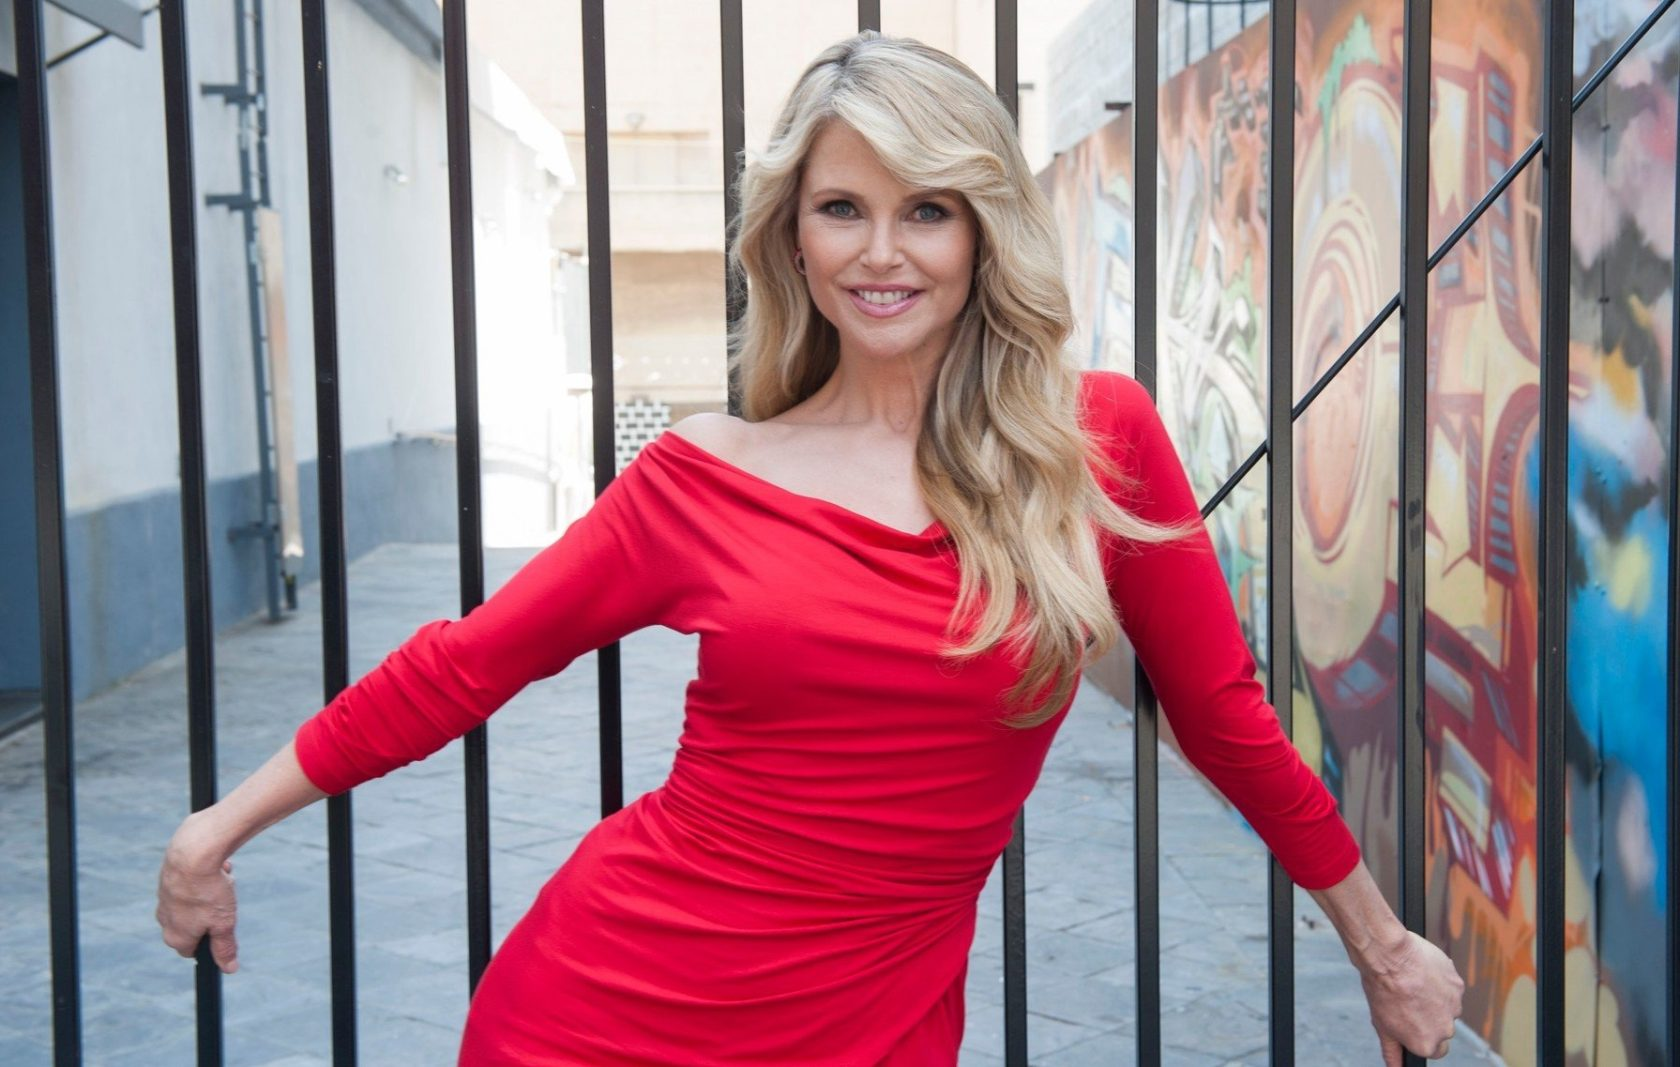 May 7, 2012 - Hollywood, California, U.S. - Model actress CHRISTIE BRINKLEY poses for photos in a red dress outside the Pantages Theatre in Hollywood before the opening of the touring production of the musical 'Chicago.', Image: 184261036, License: Rights-managed, Restrictions: , Model Release: no, Credit line: Profimedia, Zuma Press - Archives